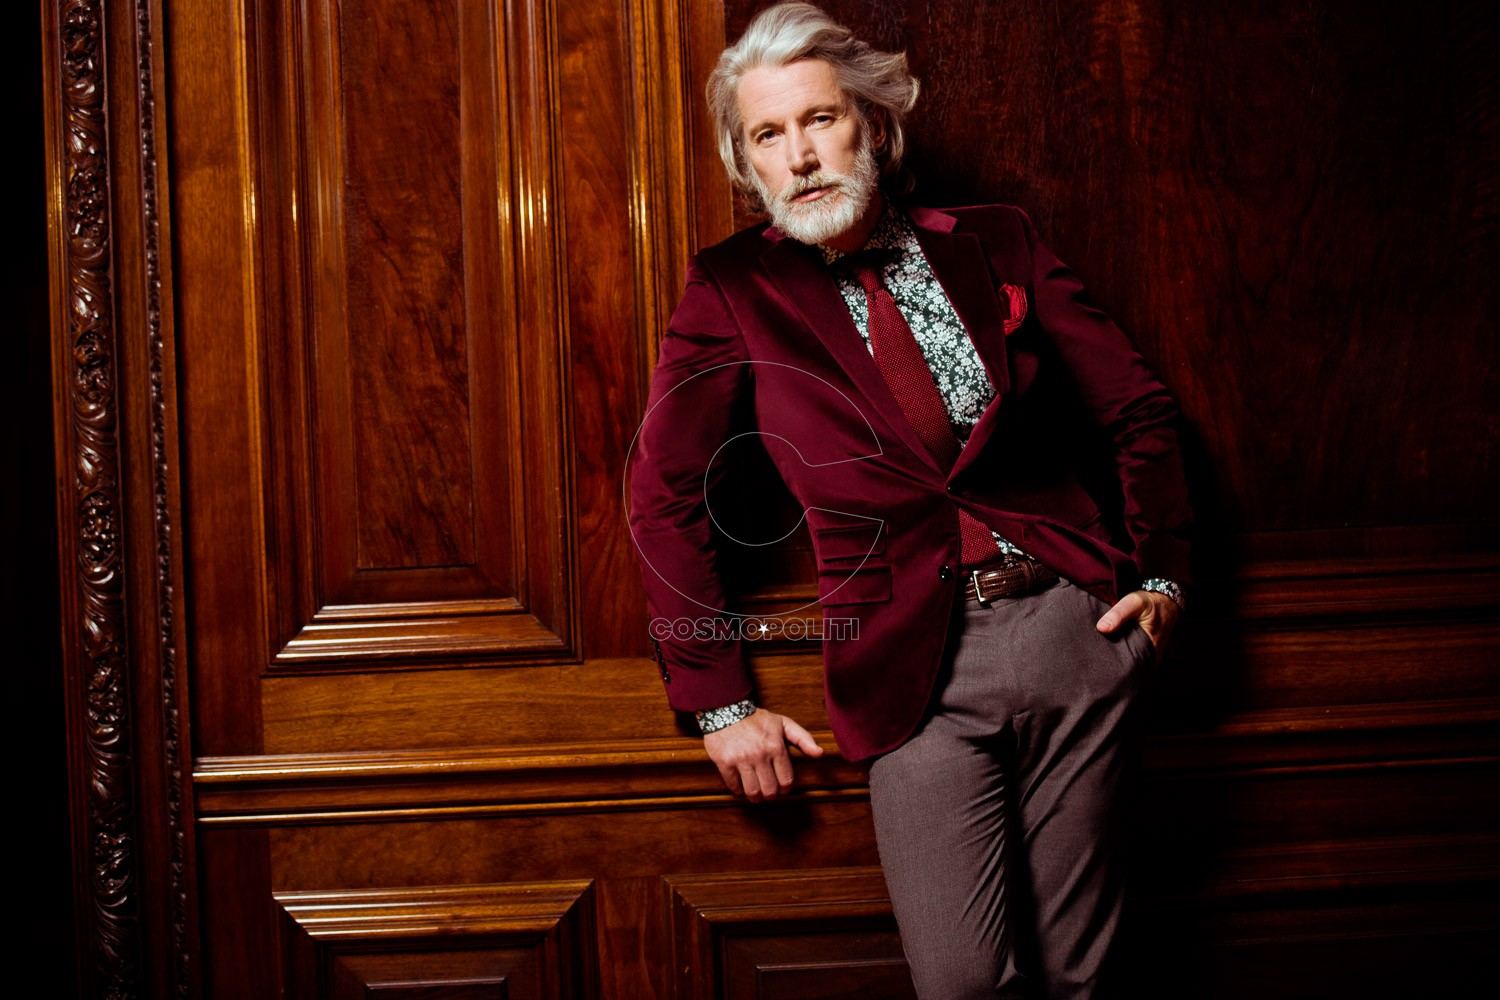 13-El-Burgues-2013-Fall-Winter-Campaign-featured-by-Aiden-Shaw-Buenos-Aires-Argentina